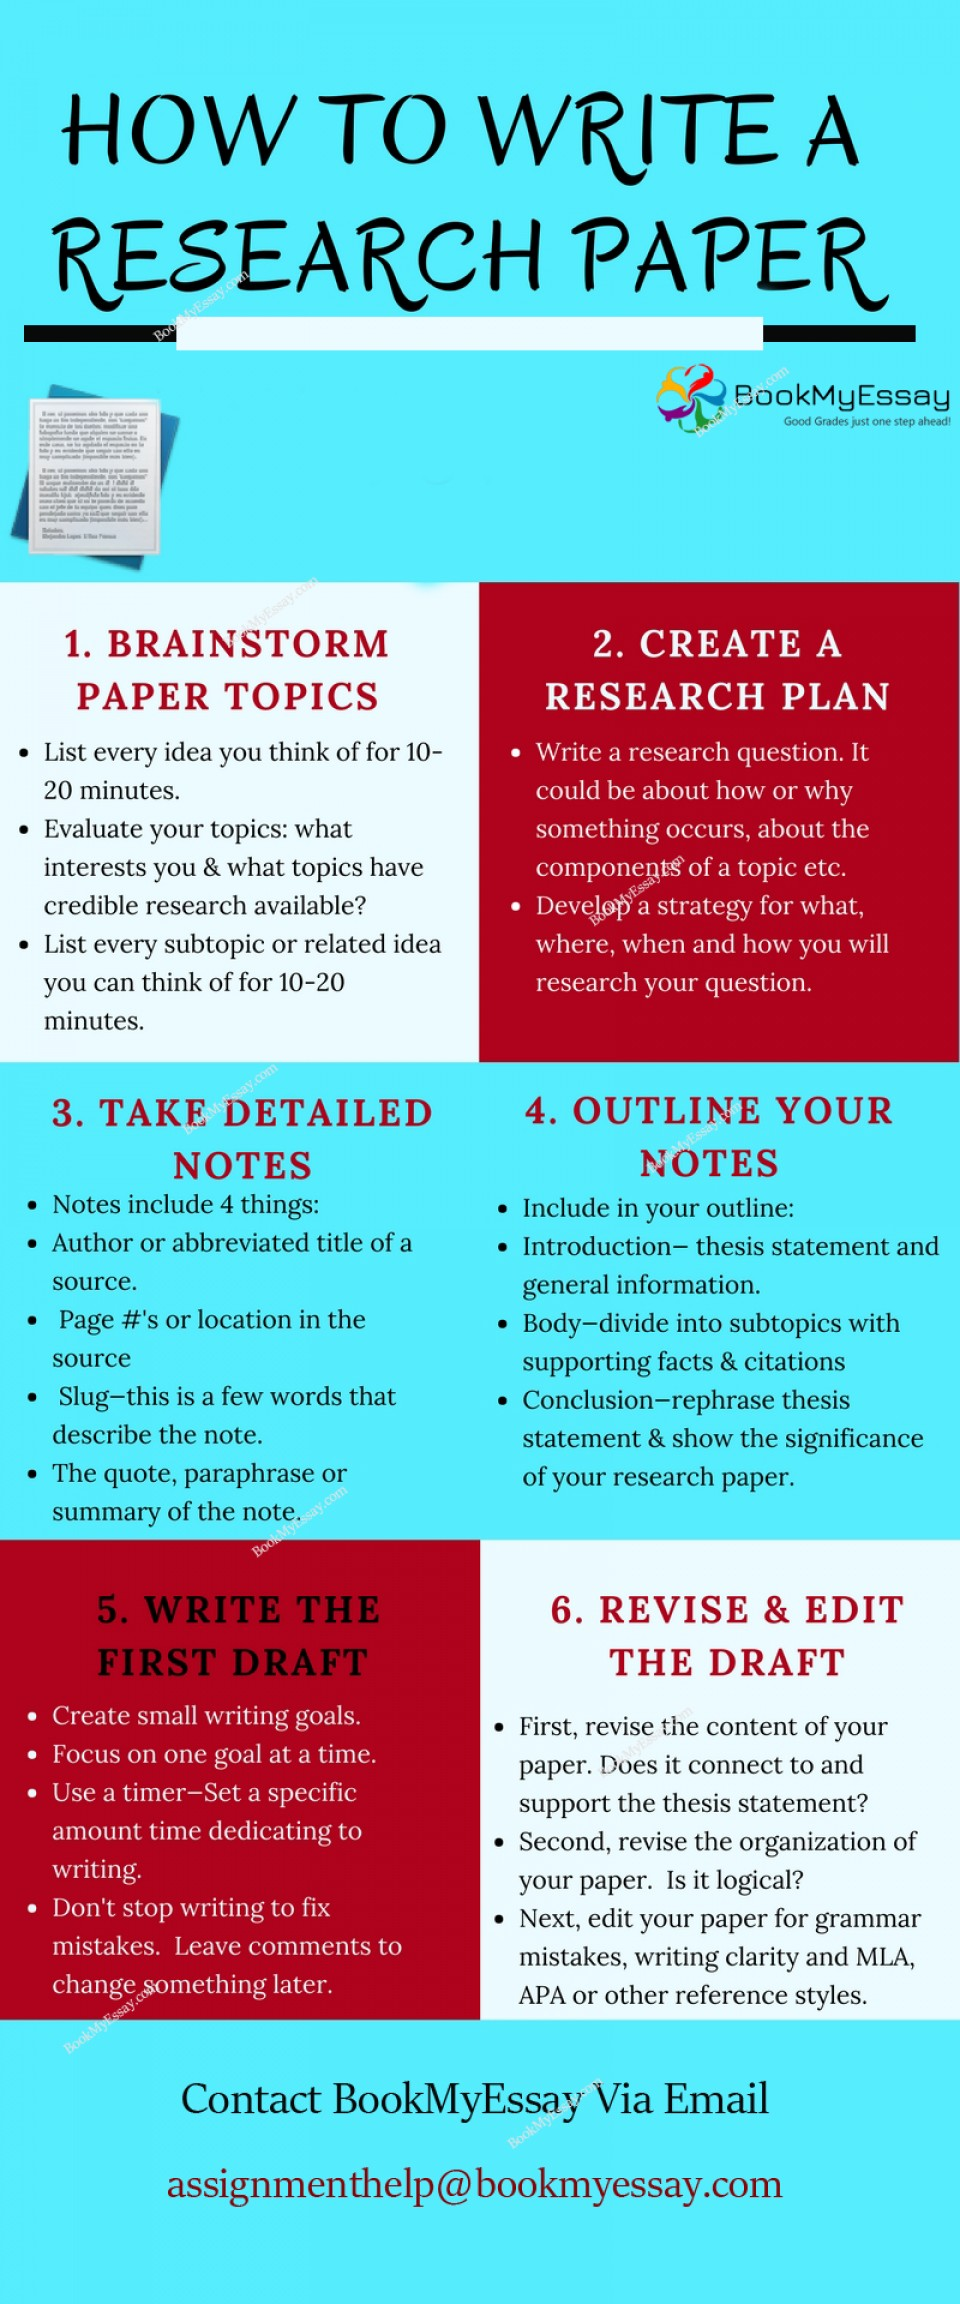 002 Researchs Writing Service Outstanding Research Papers Paper Services In Chennai Mumbai College Reviews 960